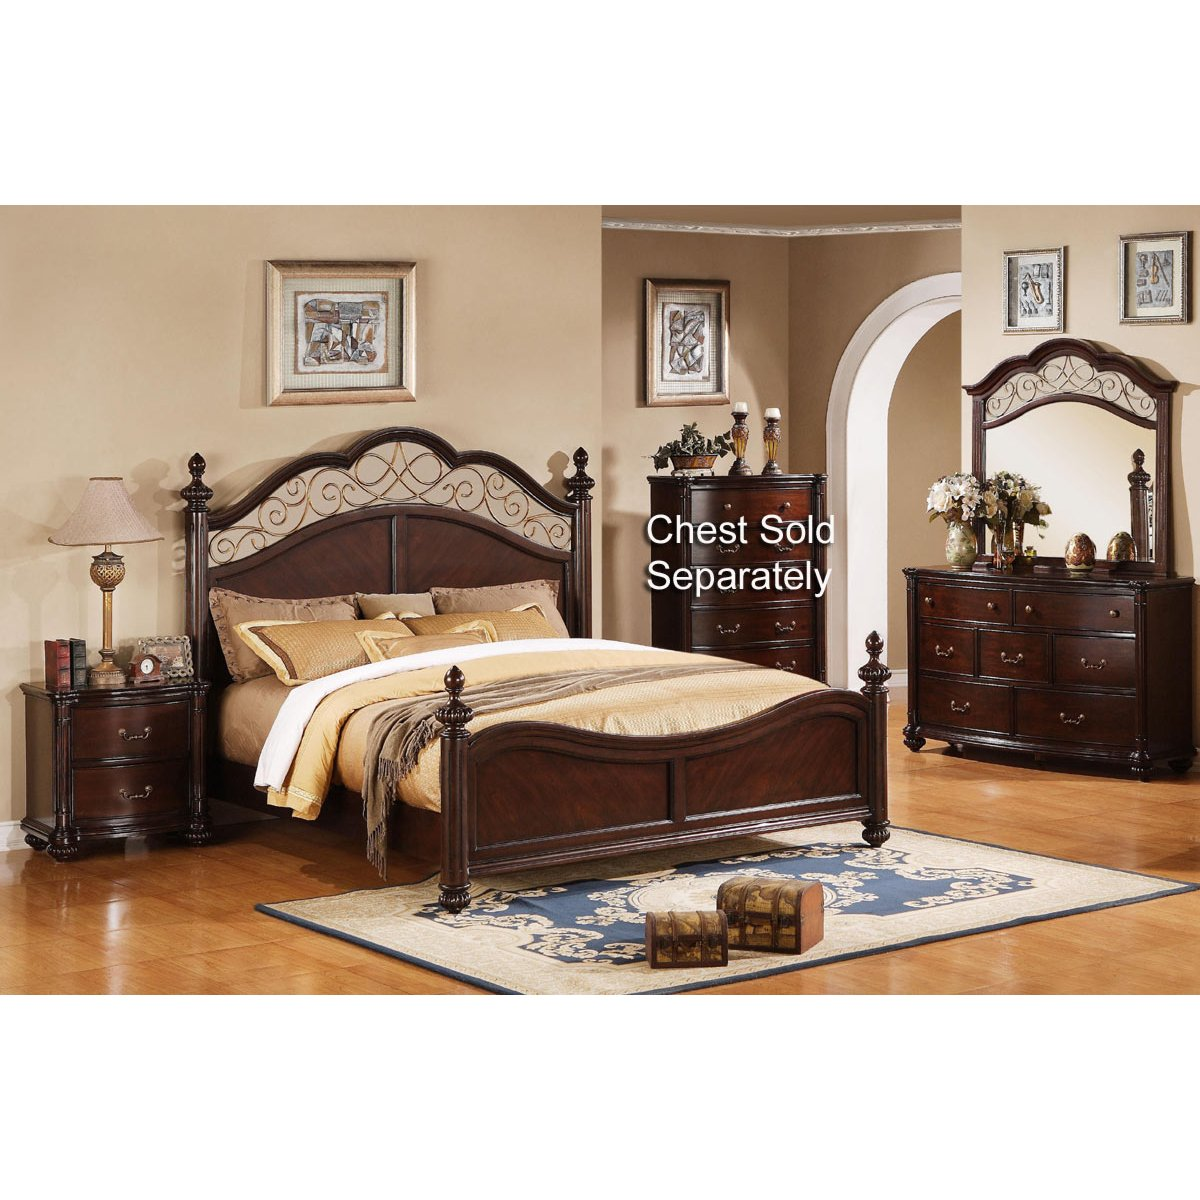 Bedroom Sets Furniture Stores: Derbyshire International Furniture 4 Piece Queen Bedroom